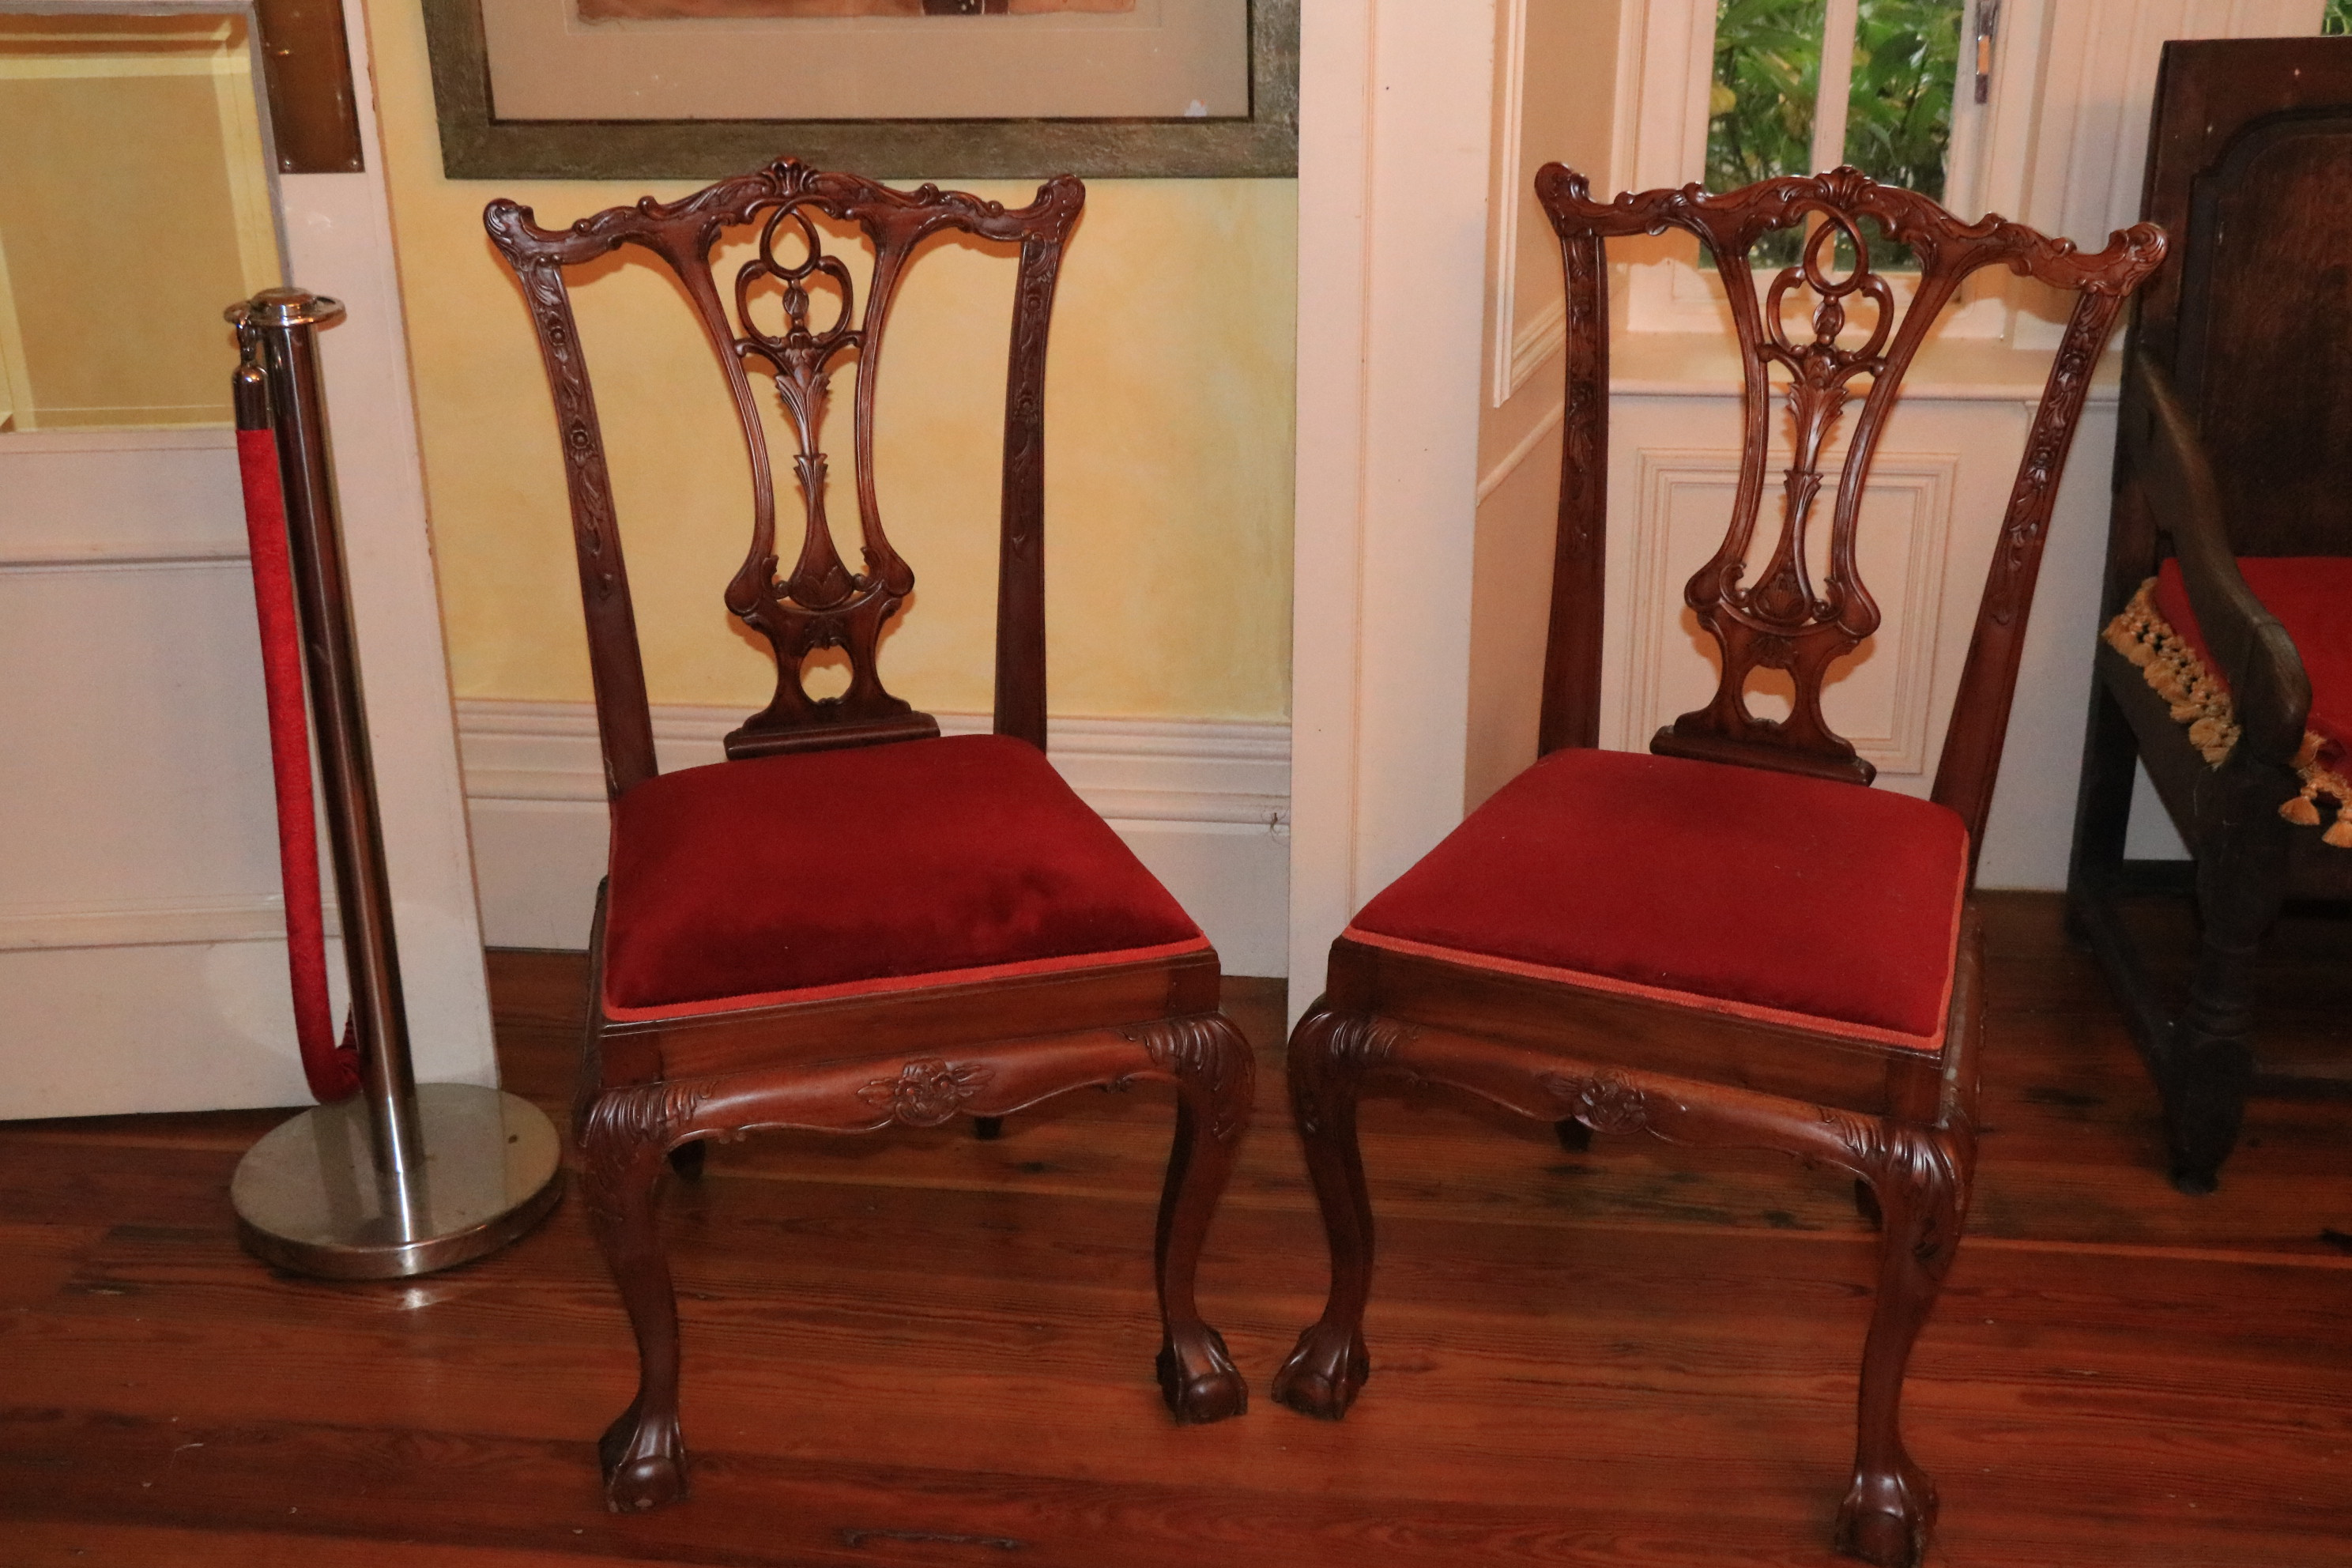 A set of 8 Chippendale style mahogany Dining Chairs, each with pierced vase shaped splat on front - Image 2 of 2